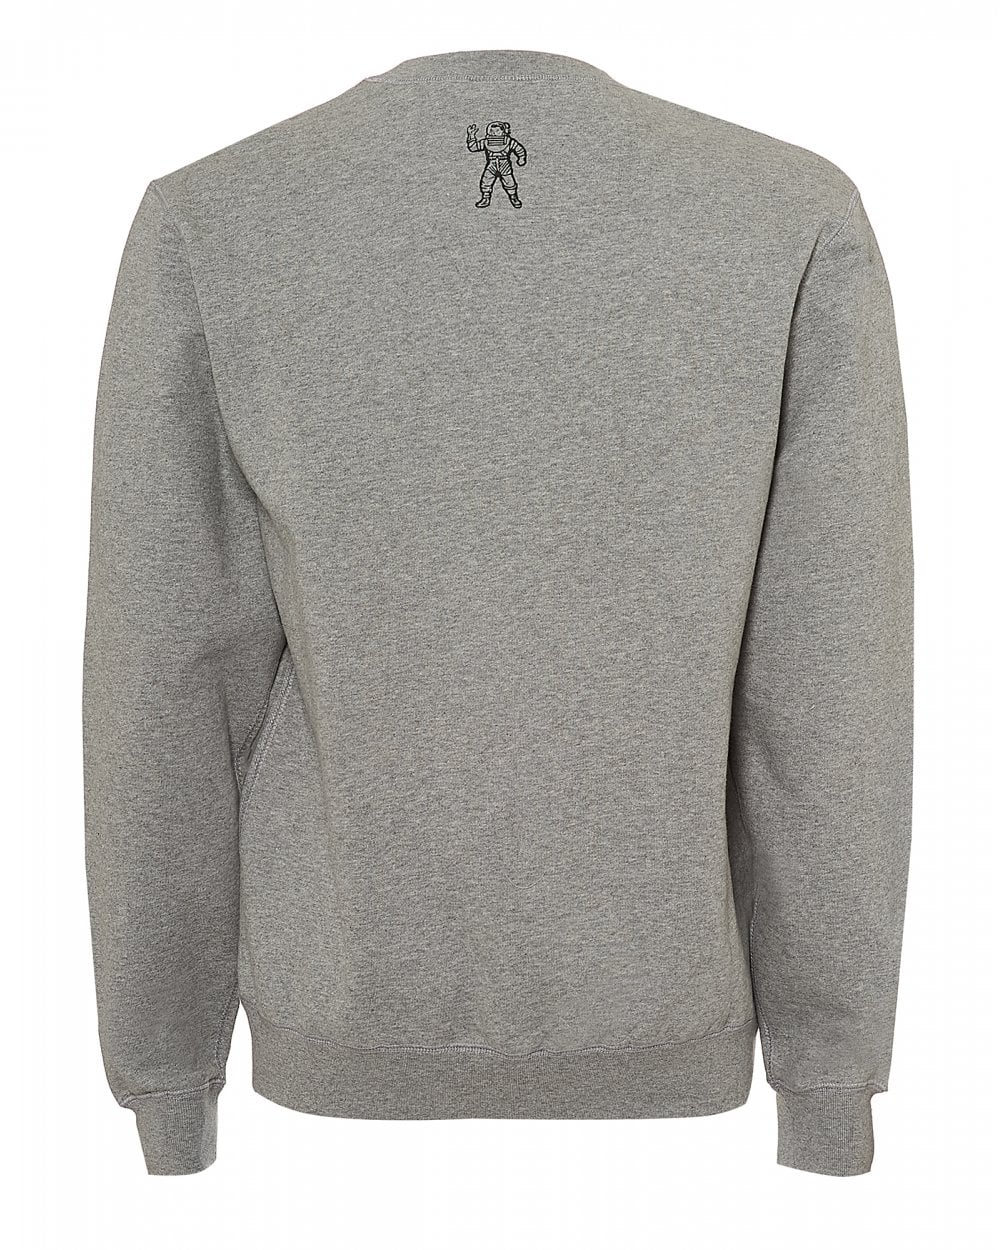 sports shoes cc364 489a4 Mens Reversible Sweatshirt, Africa Camo Heather Grey Sweat